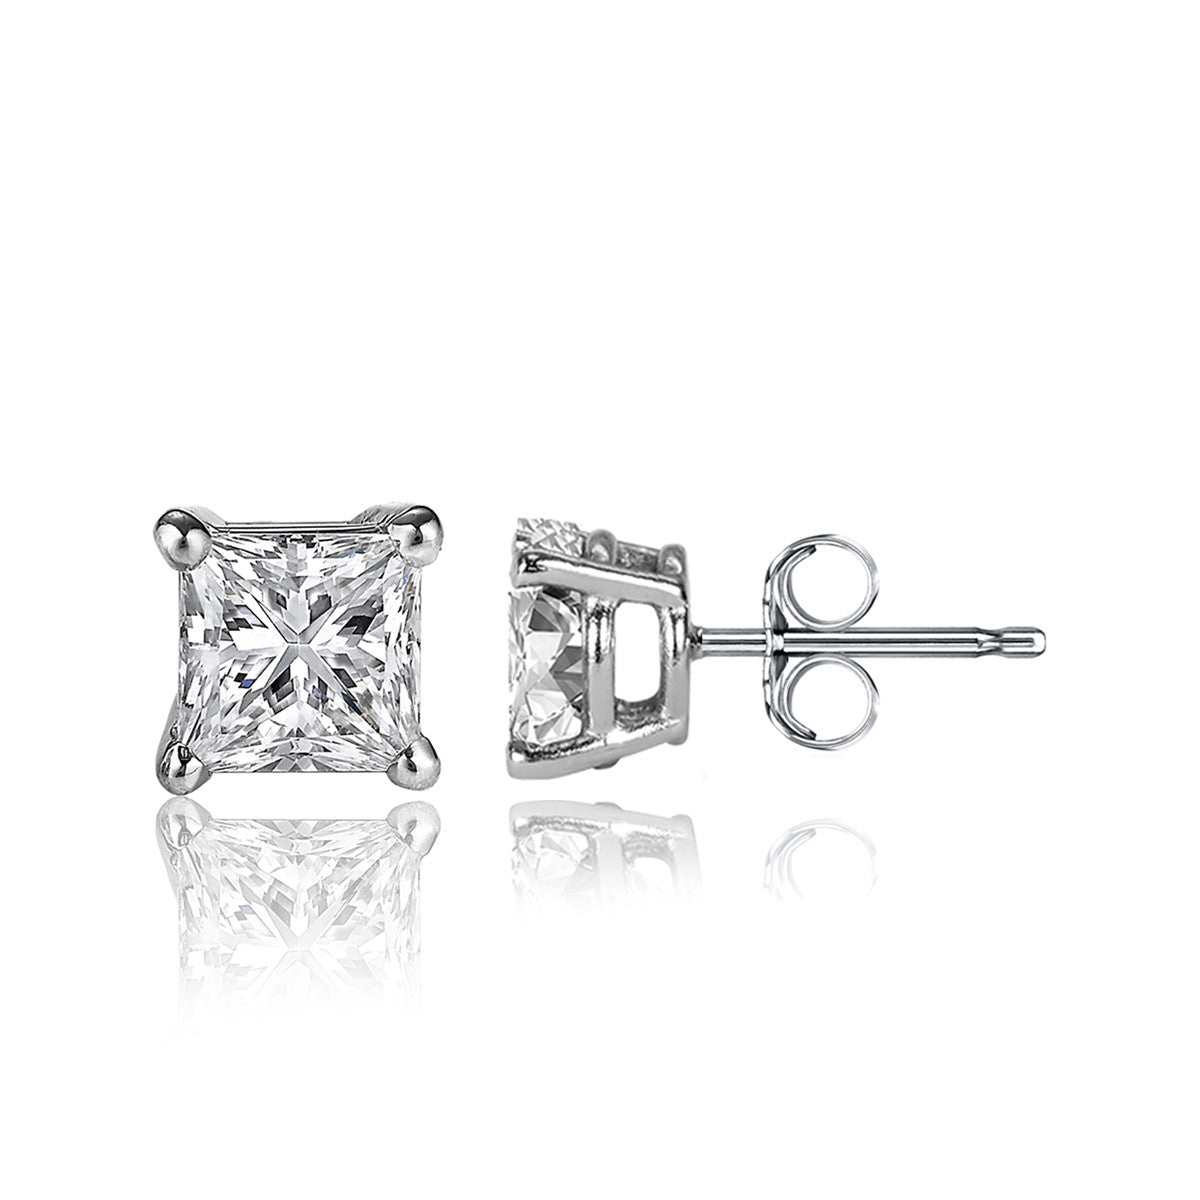 1 Carat Princess Cut 14k White Gold 4 Prong Basket Set Diamond Solitaire Stud Earrings (Signature Quality)